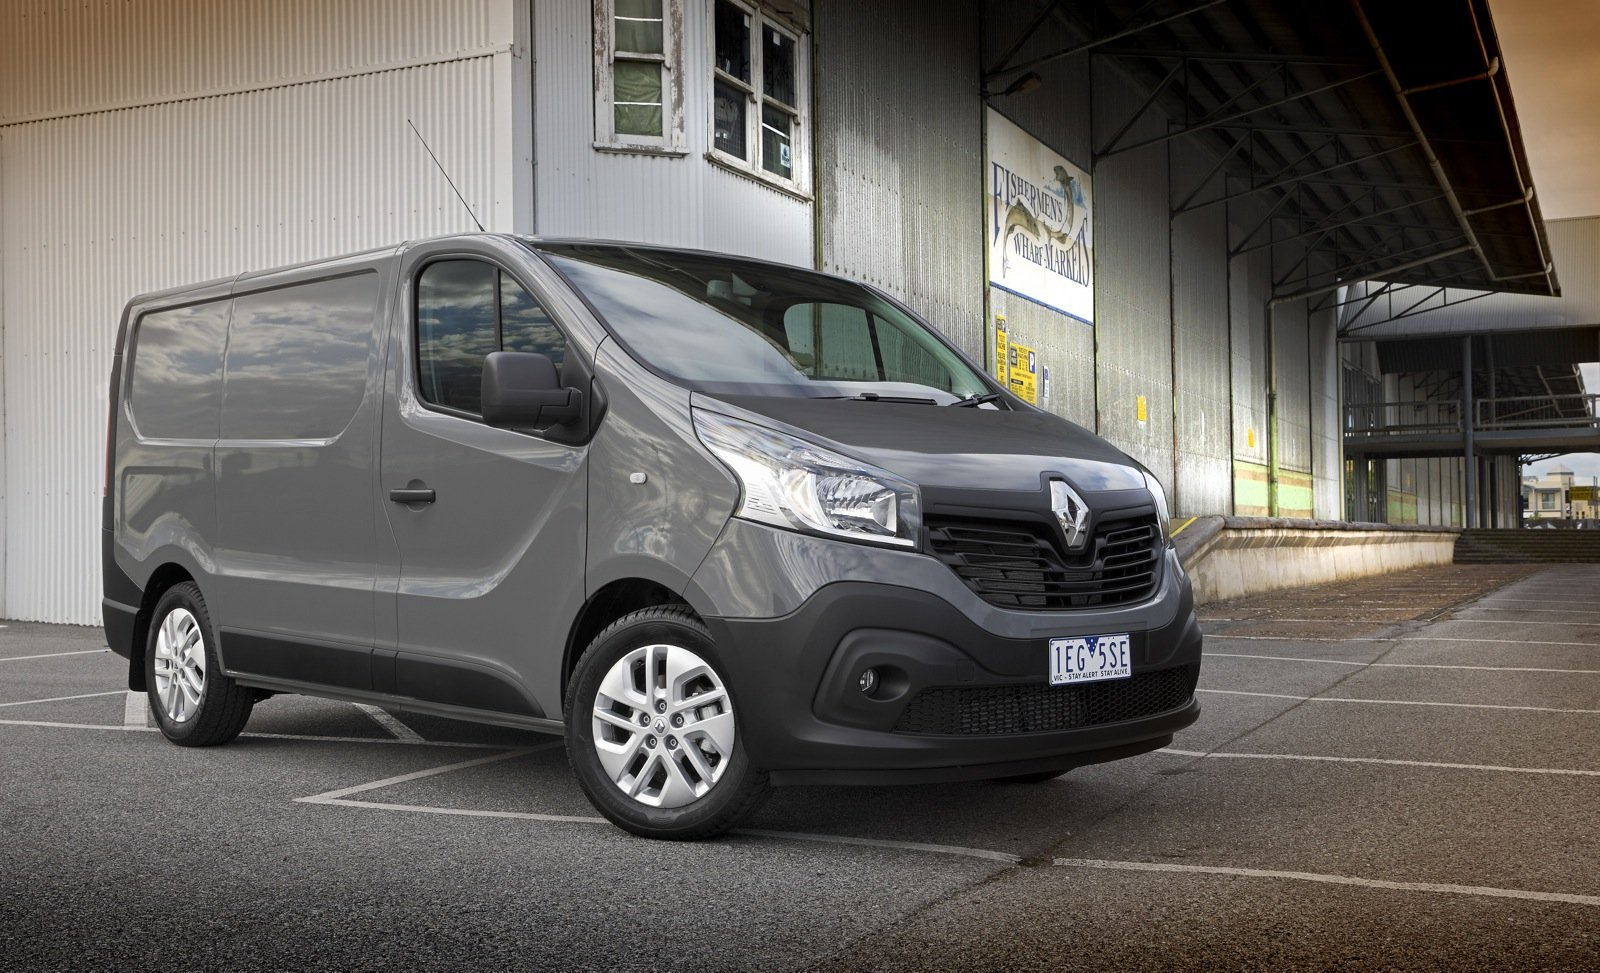 2015 Renault Trafic Review | CarAdvice